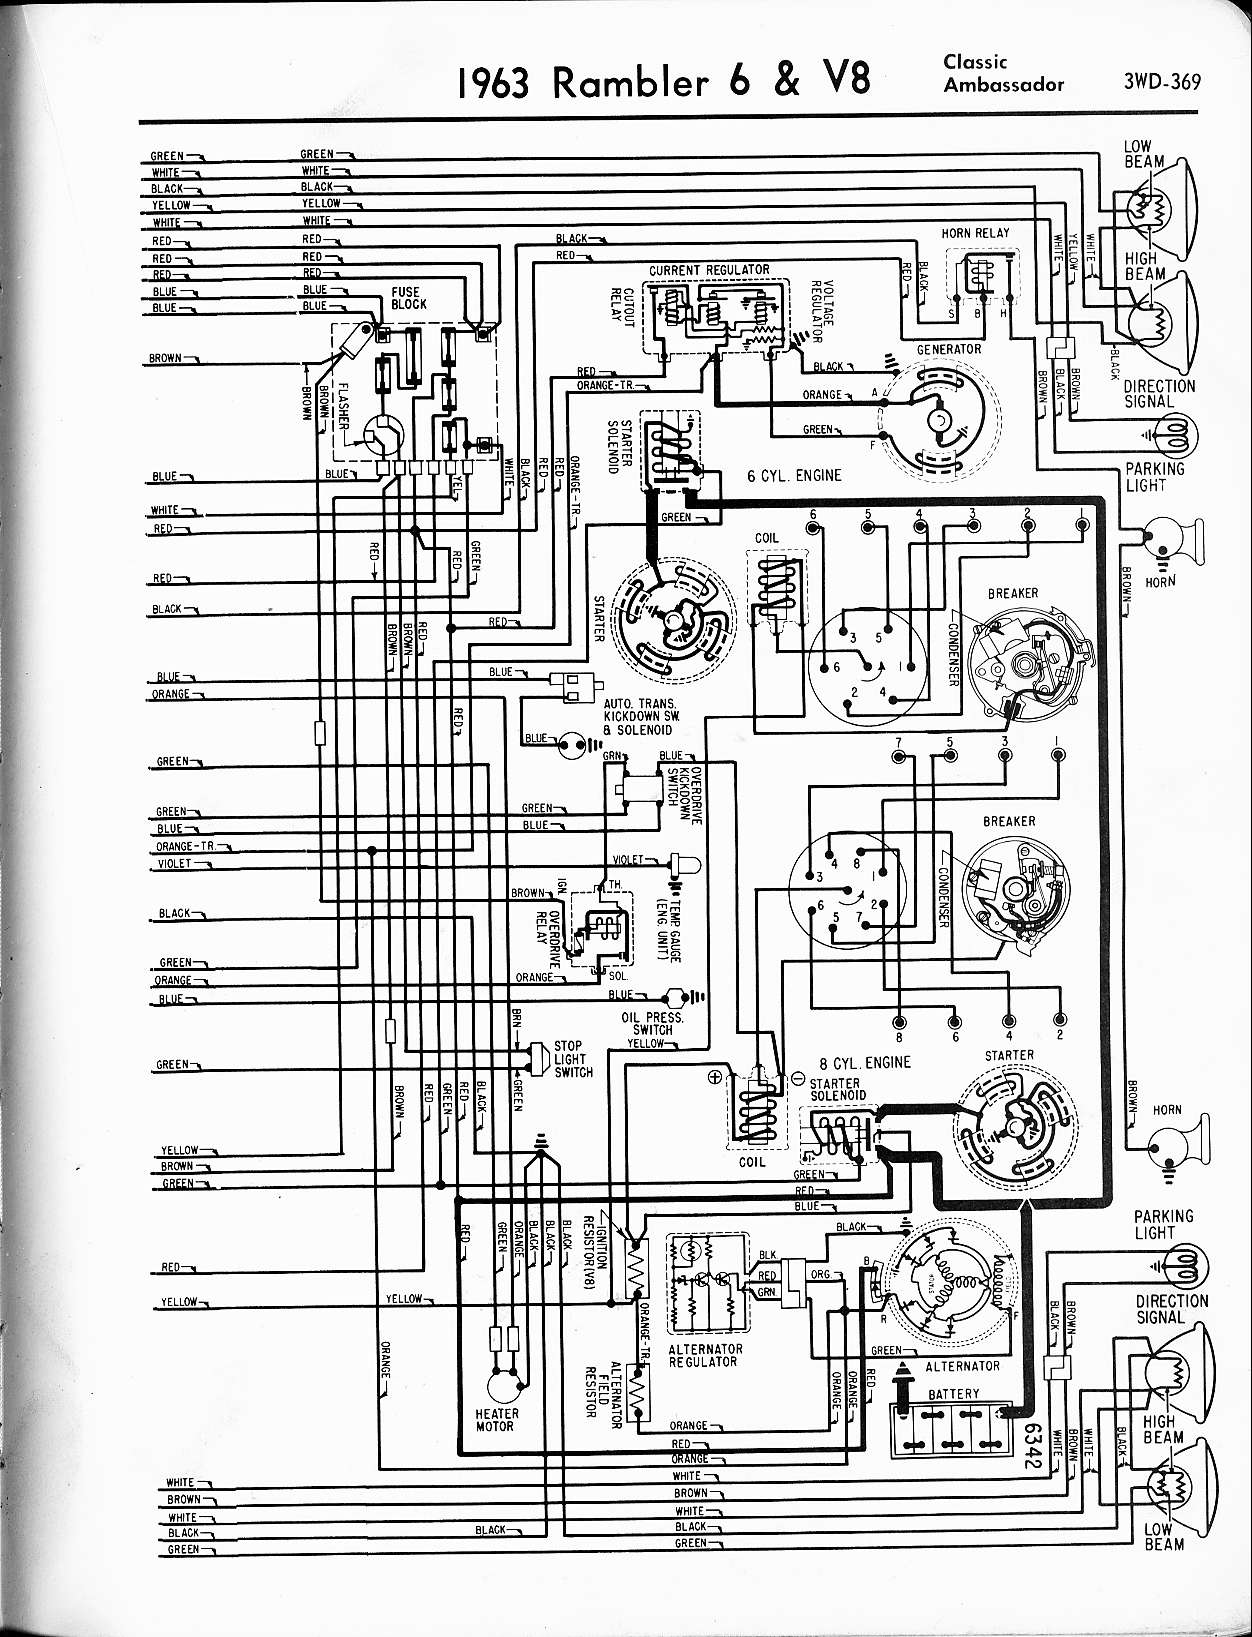 1965 rambler marlin wiring diagram 1965 free engine image for user manual d. Black Bedroom Furniture Sets. Home Design Ideas